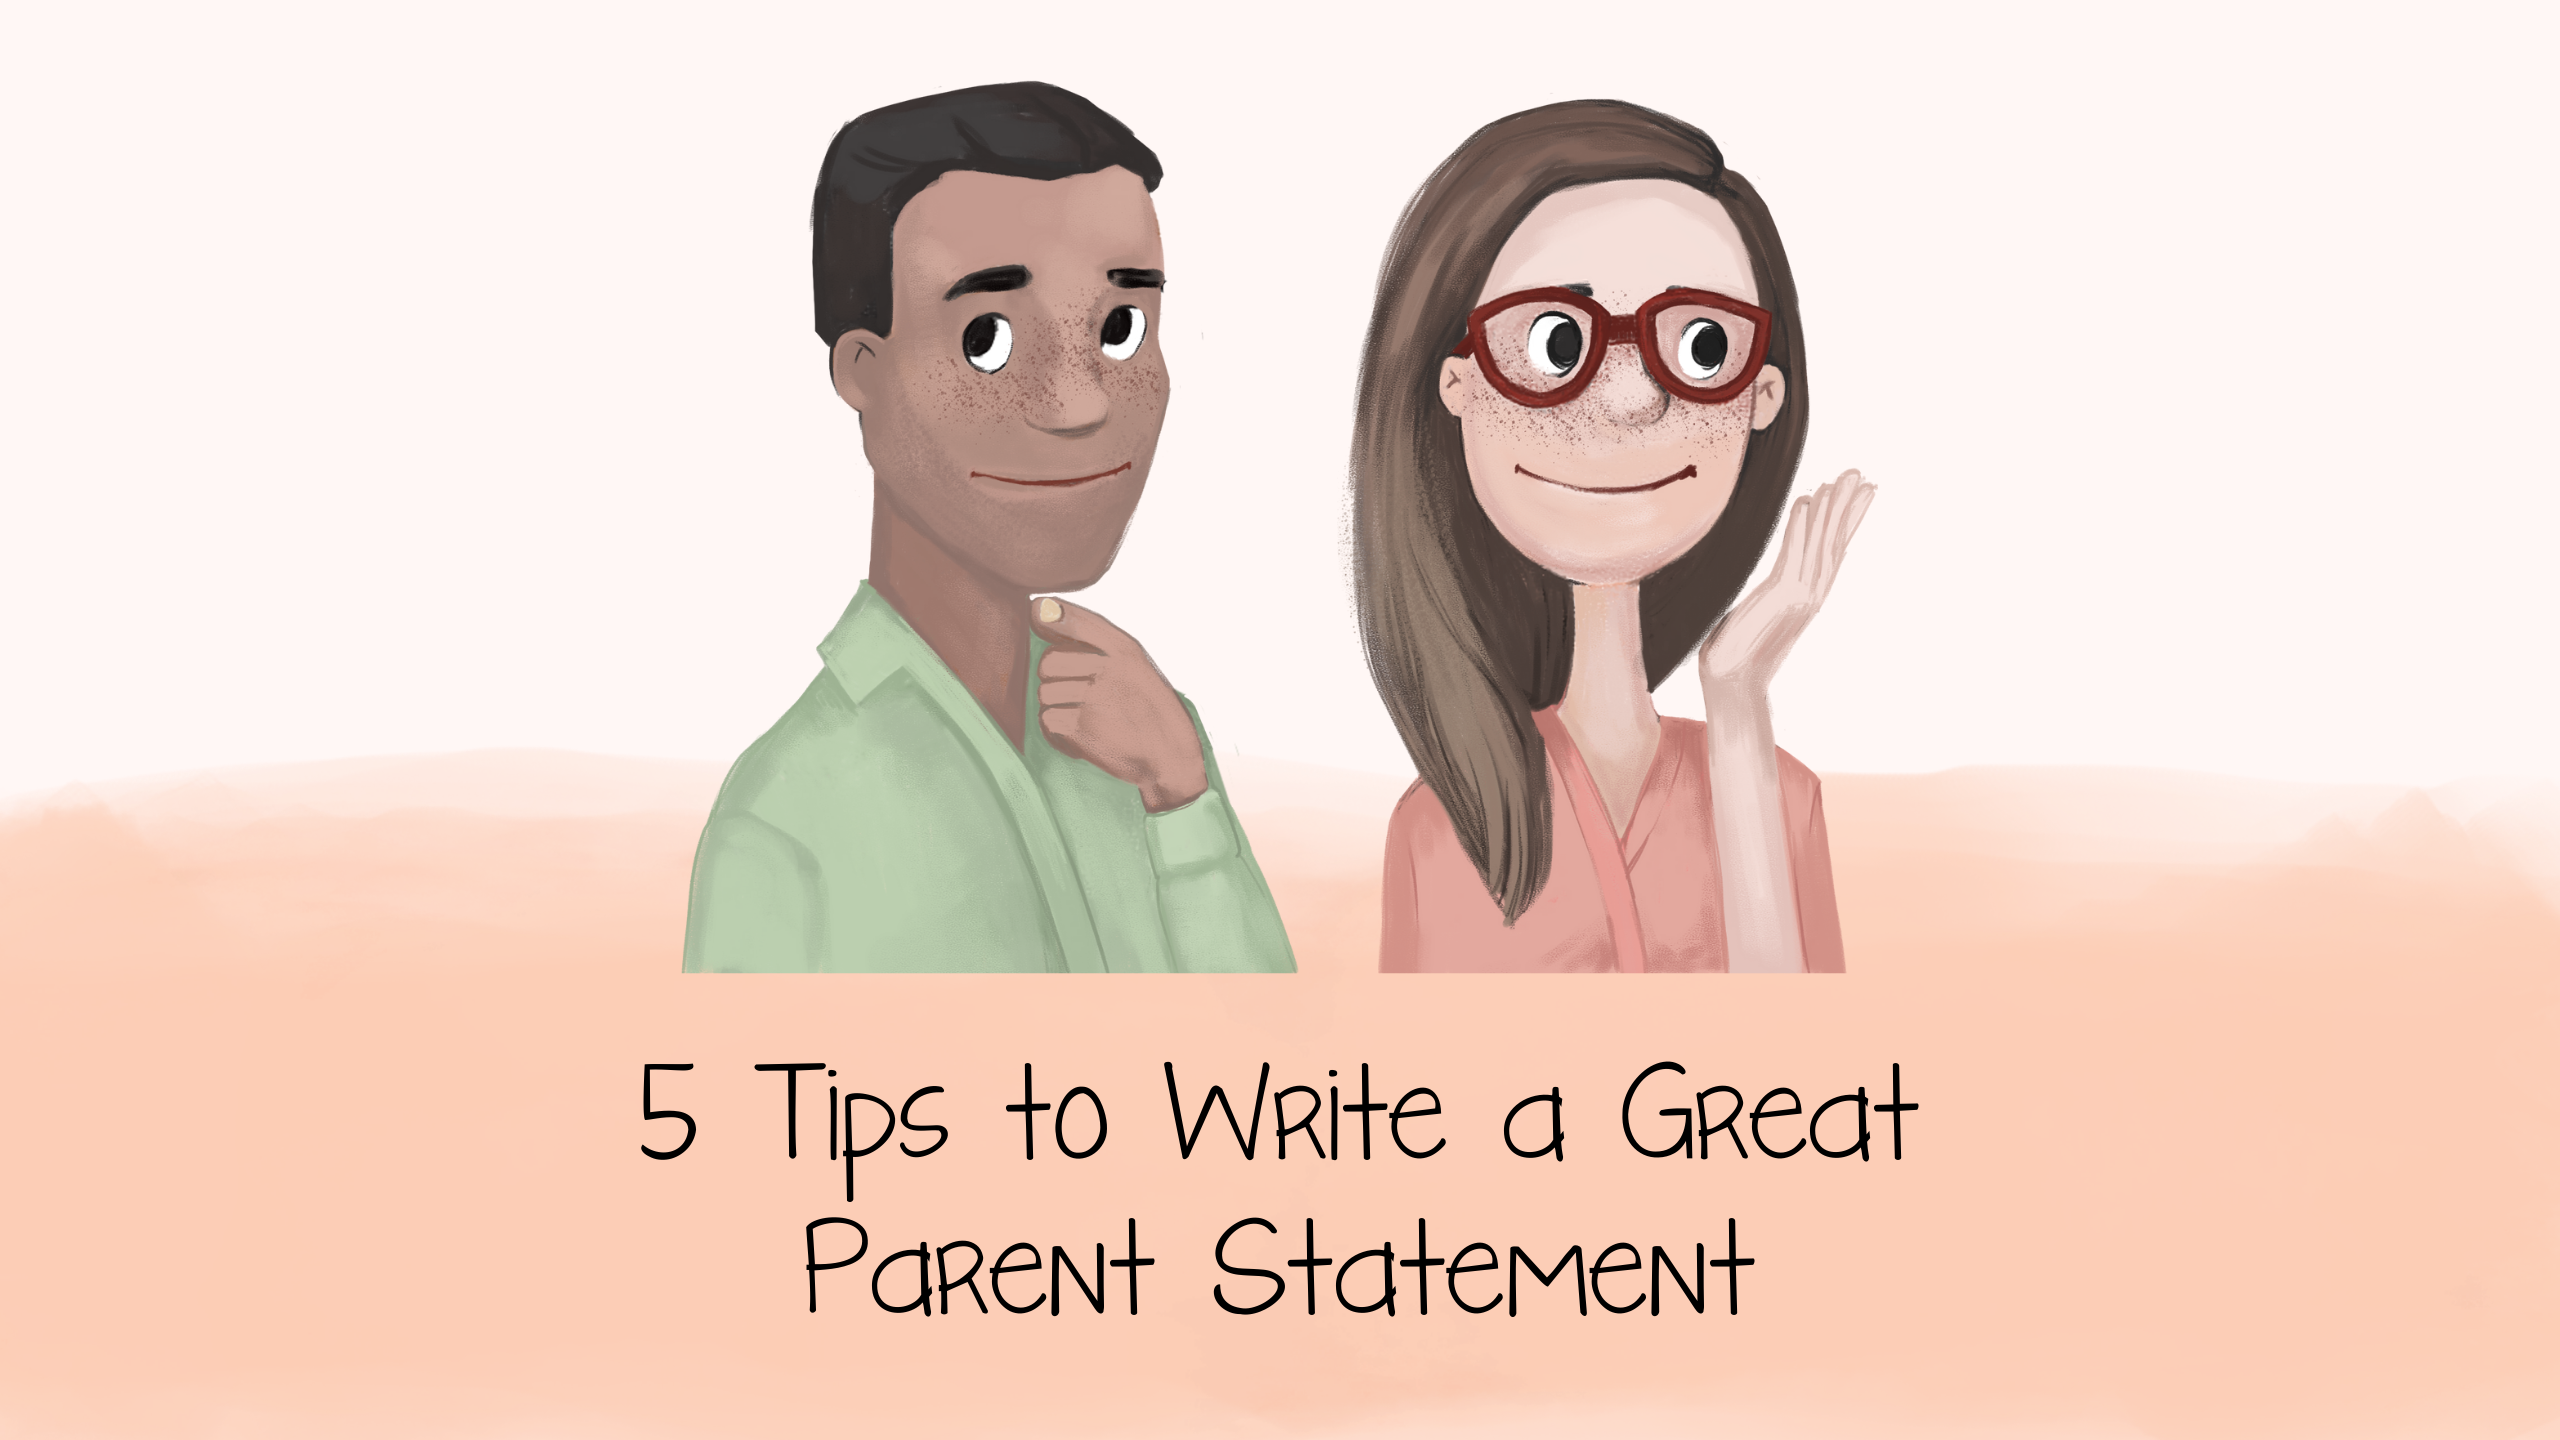 5 Tips to Write a Great Parent Statement